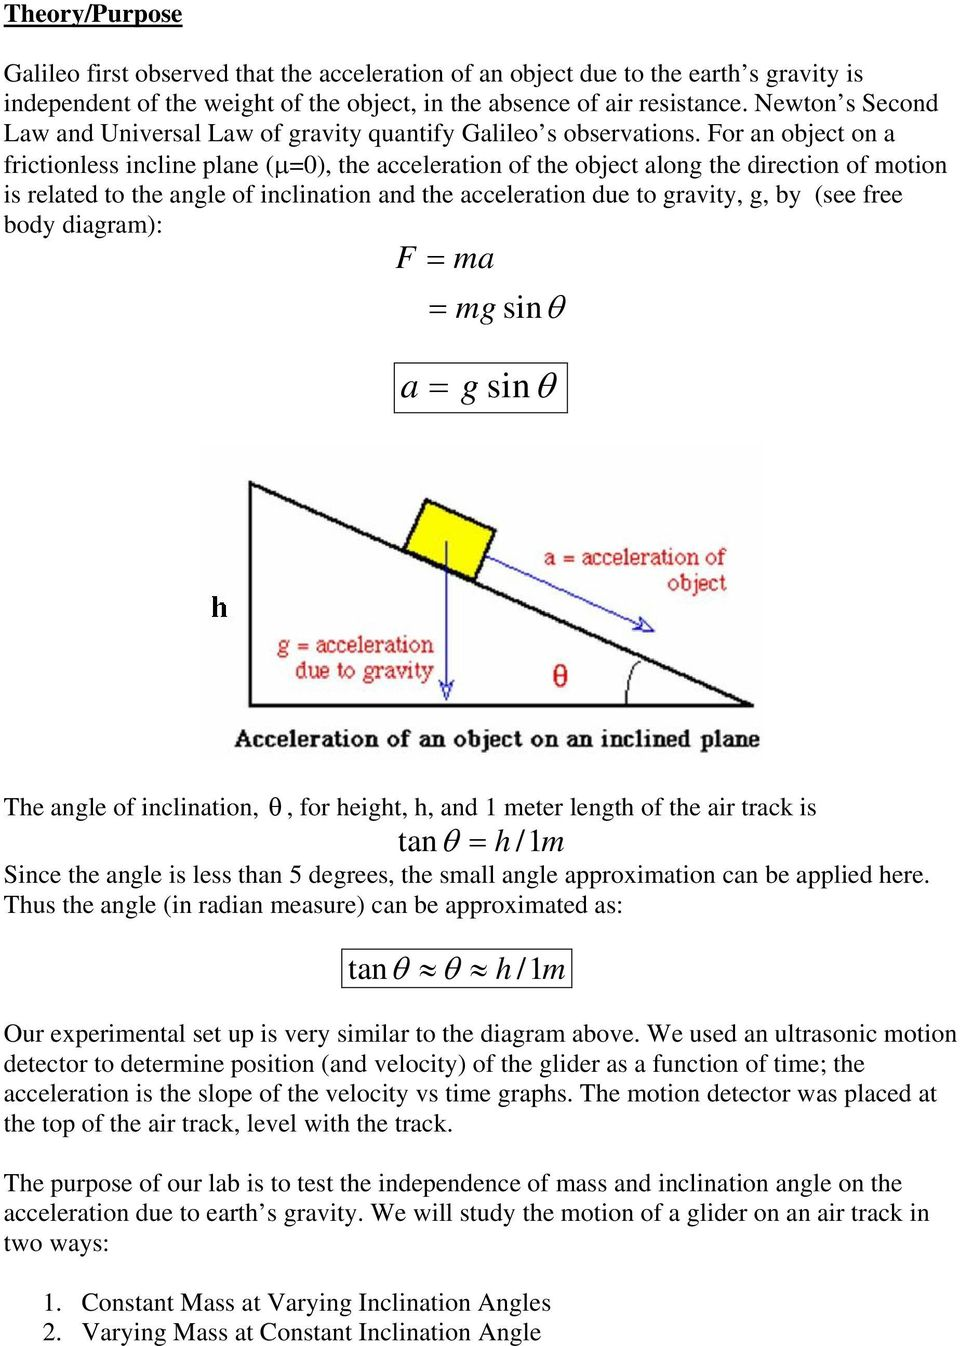 For an object on a frictionless incline plane (μ=0), the acceleration of the object along the direction of motion is related to the angle of inclination and the acceleration due to gravity, g, by